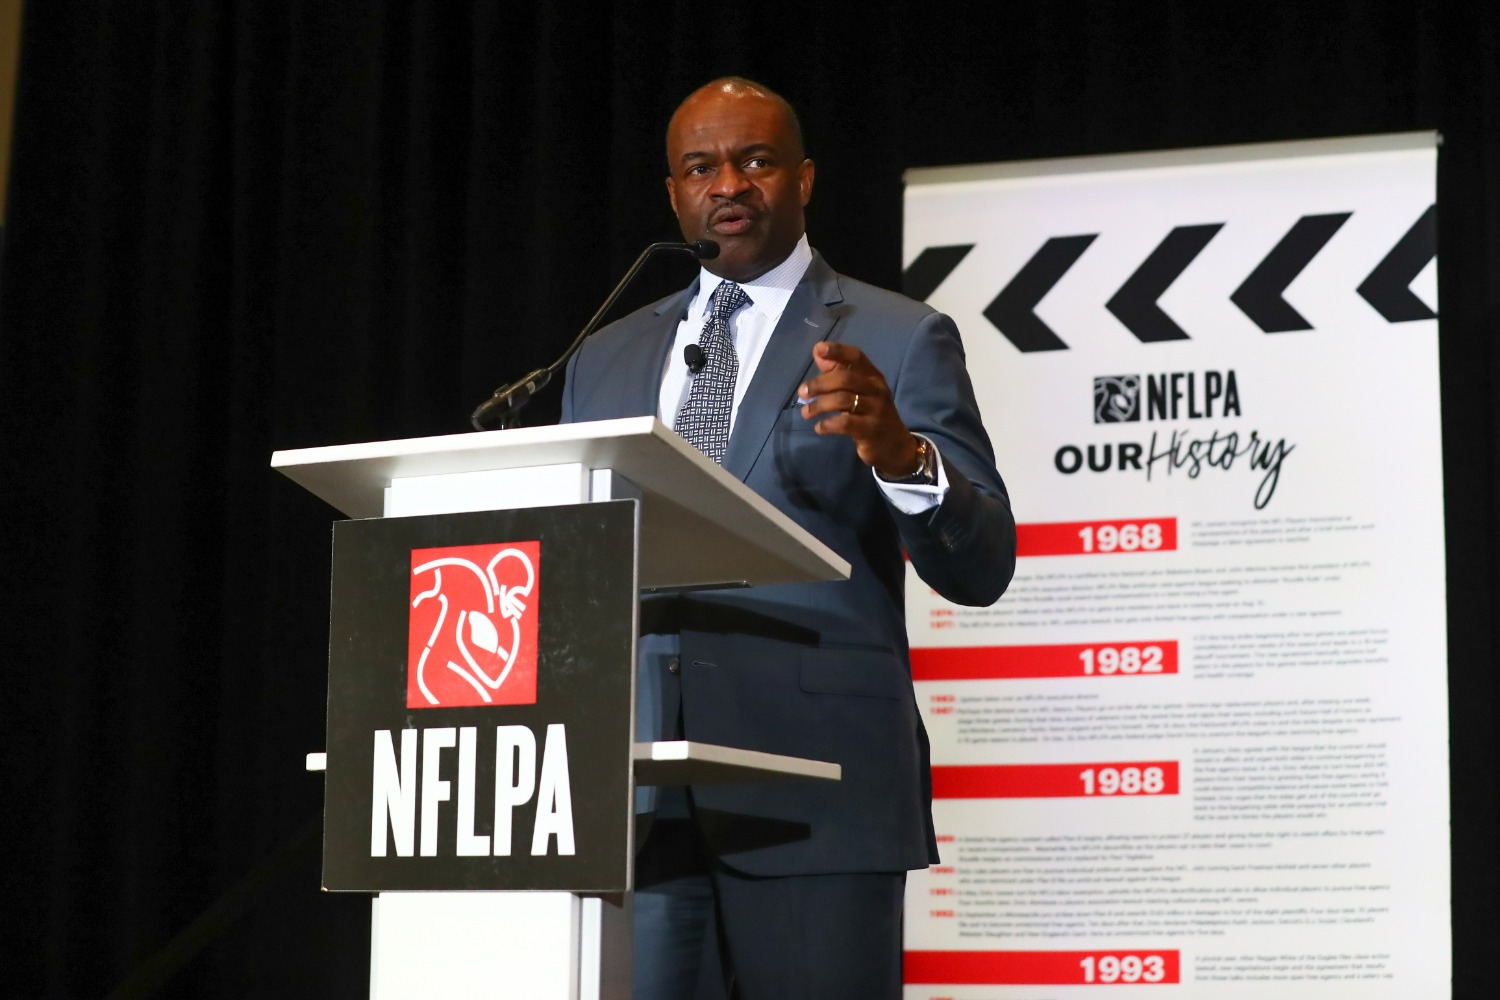 NFL fans scored a huge win against COVID-19 with the NFL and NFLPA agreeing to changes that ensure the 2020 NFL season will take place.